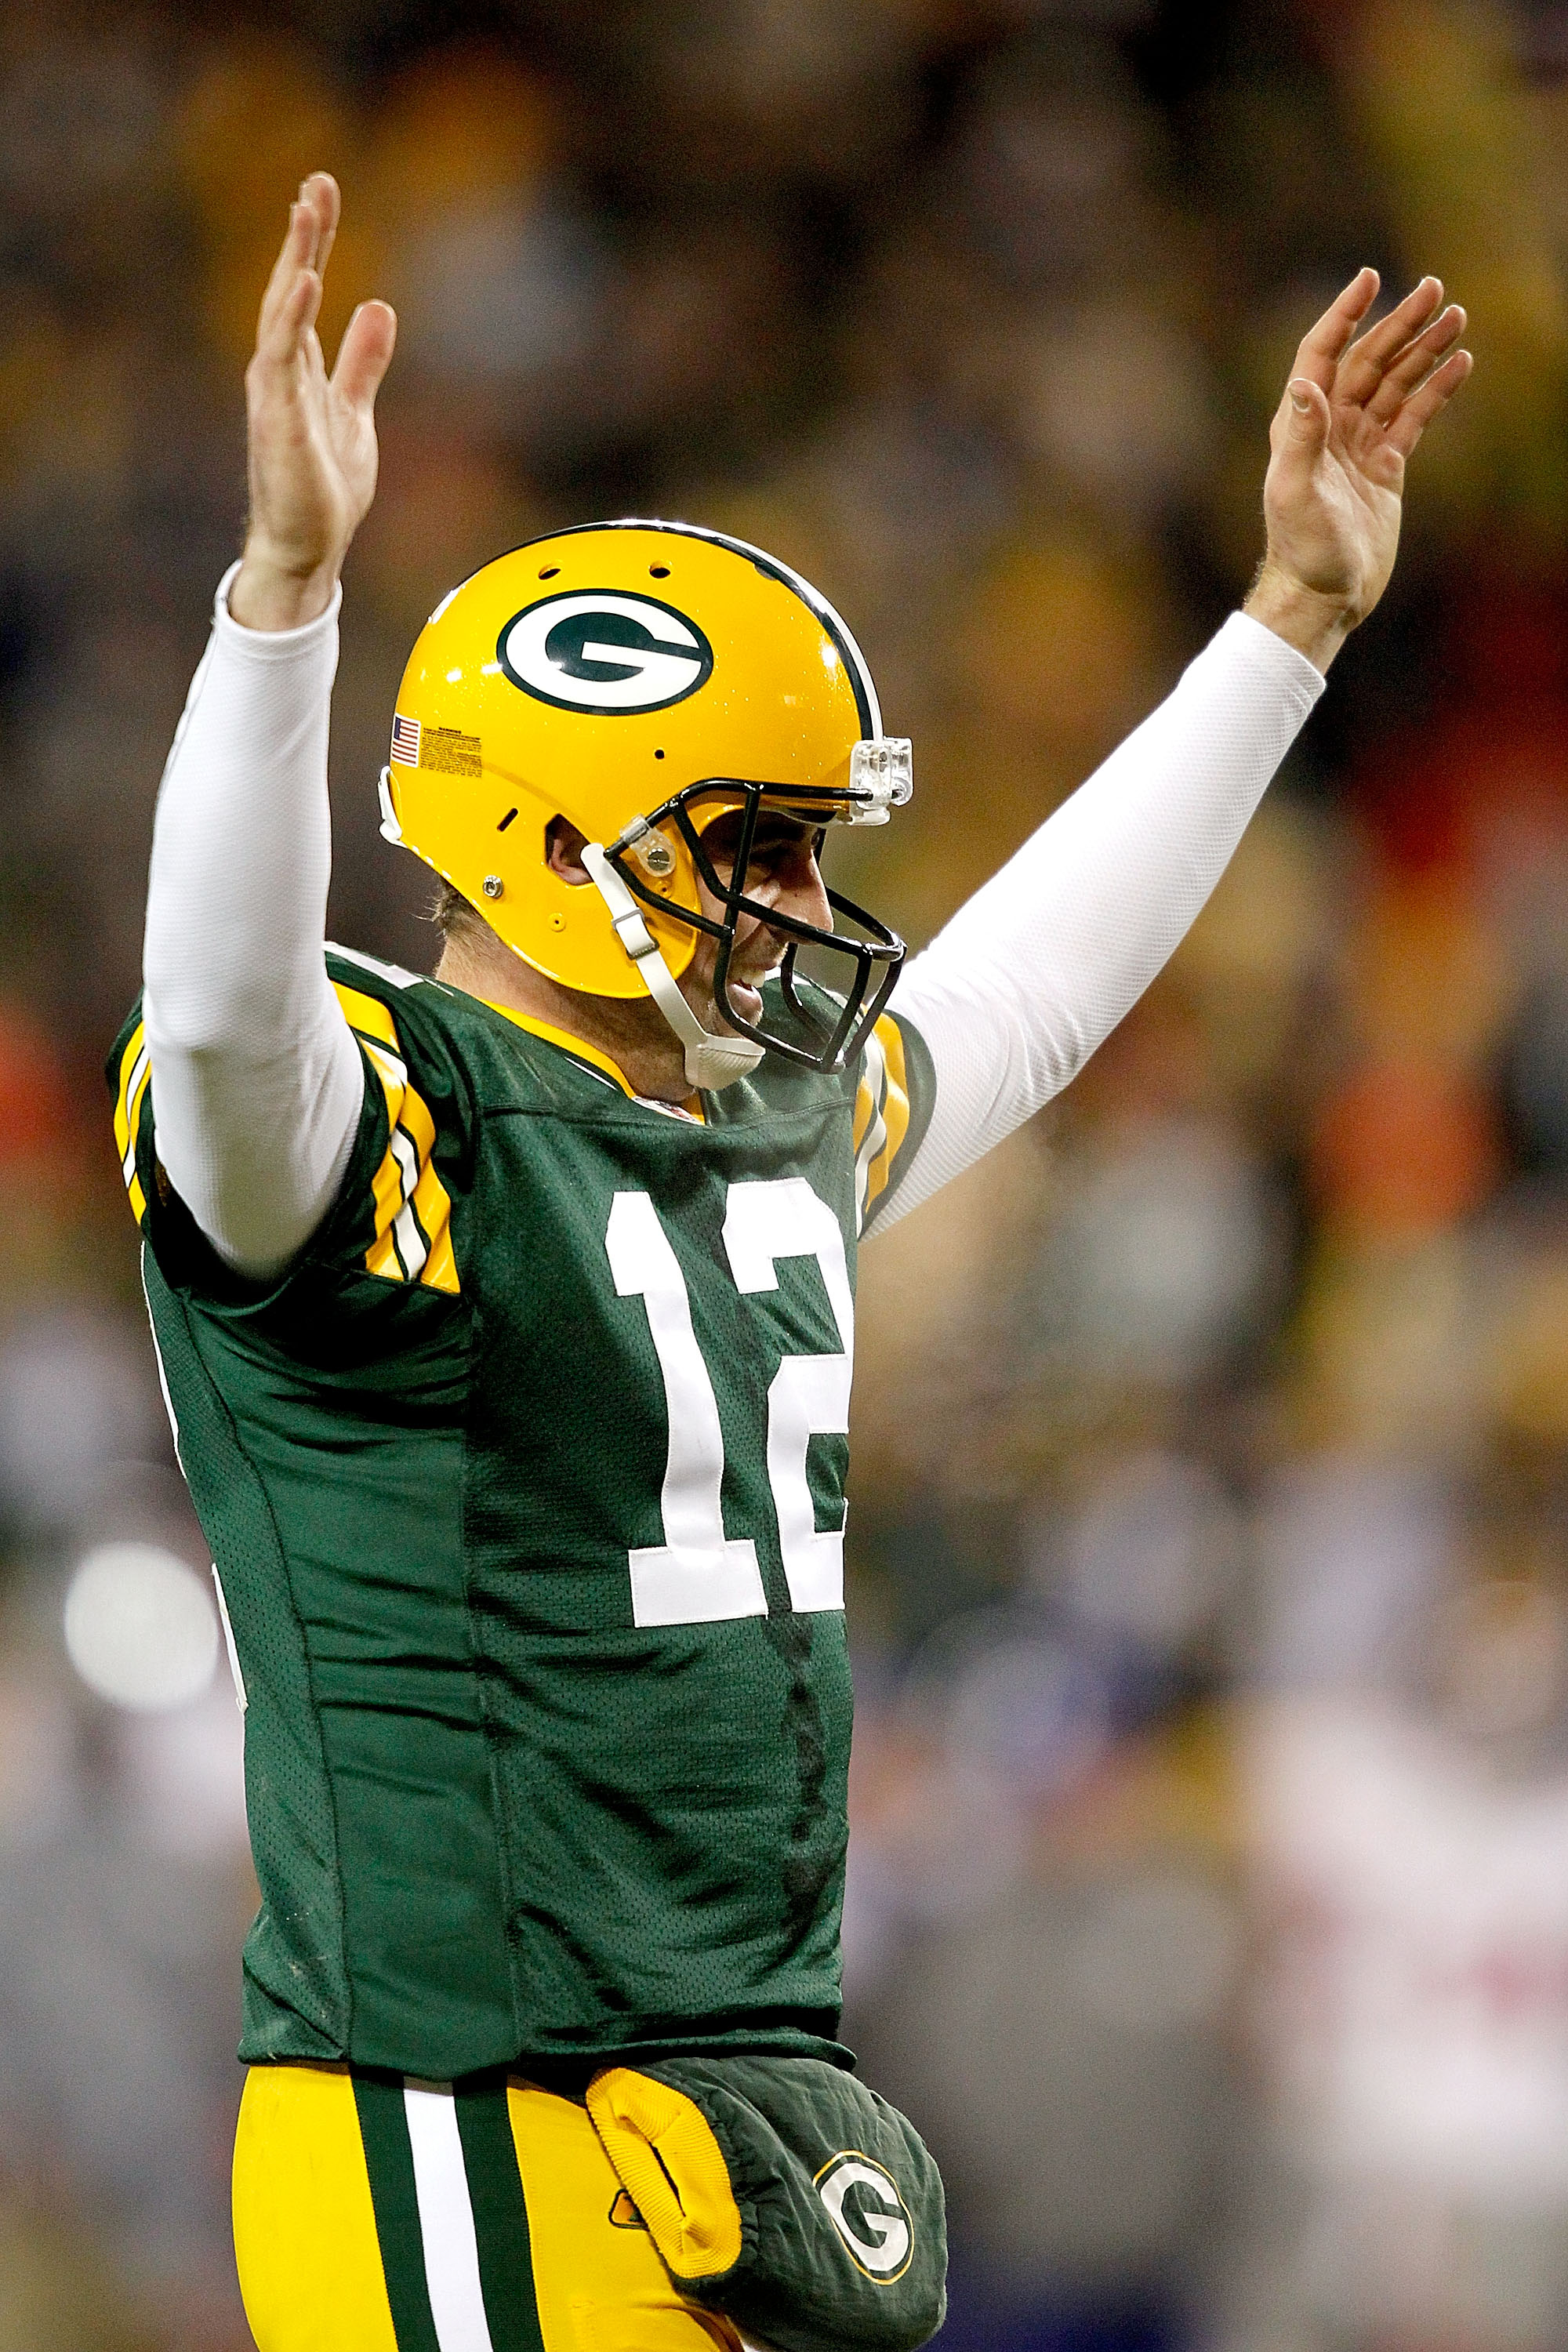 GREEN BAY, WI - DECEMBER 26:  Aaron Rodgers #12 of the Green Bay Packers is celebrates a touchdown against the New York Giants at Lambeau Field on December 26, 2010 in Green Bay, Wisconsin.  (Photo by Matthew Stockman/Getty Images)